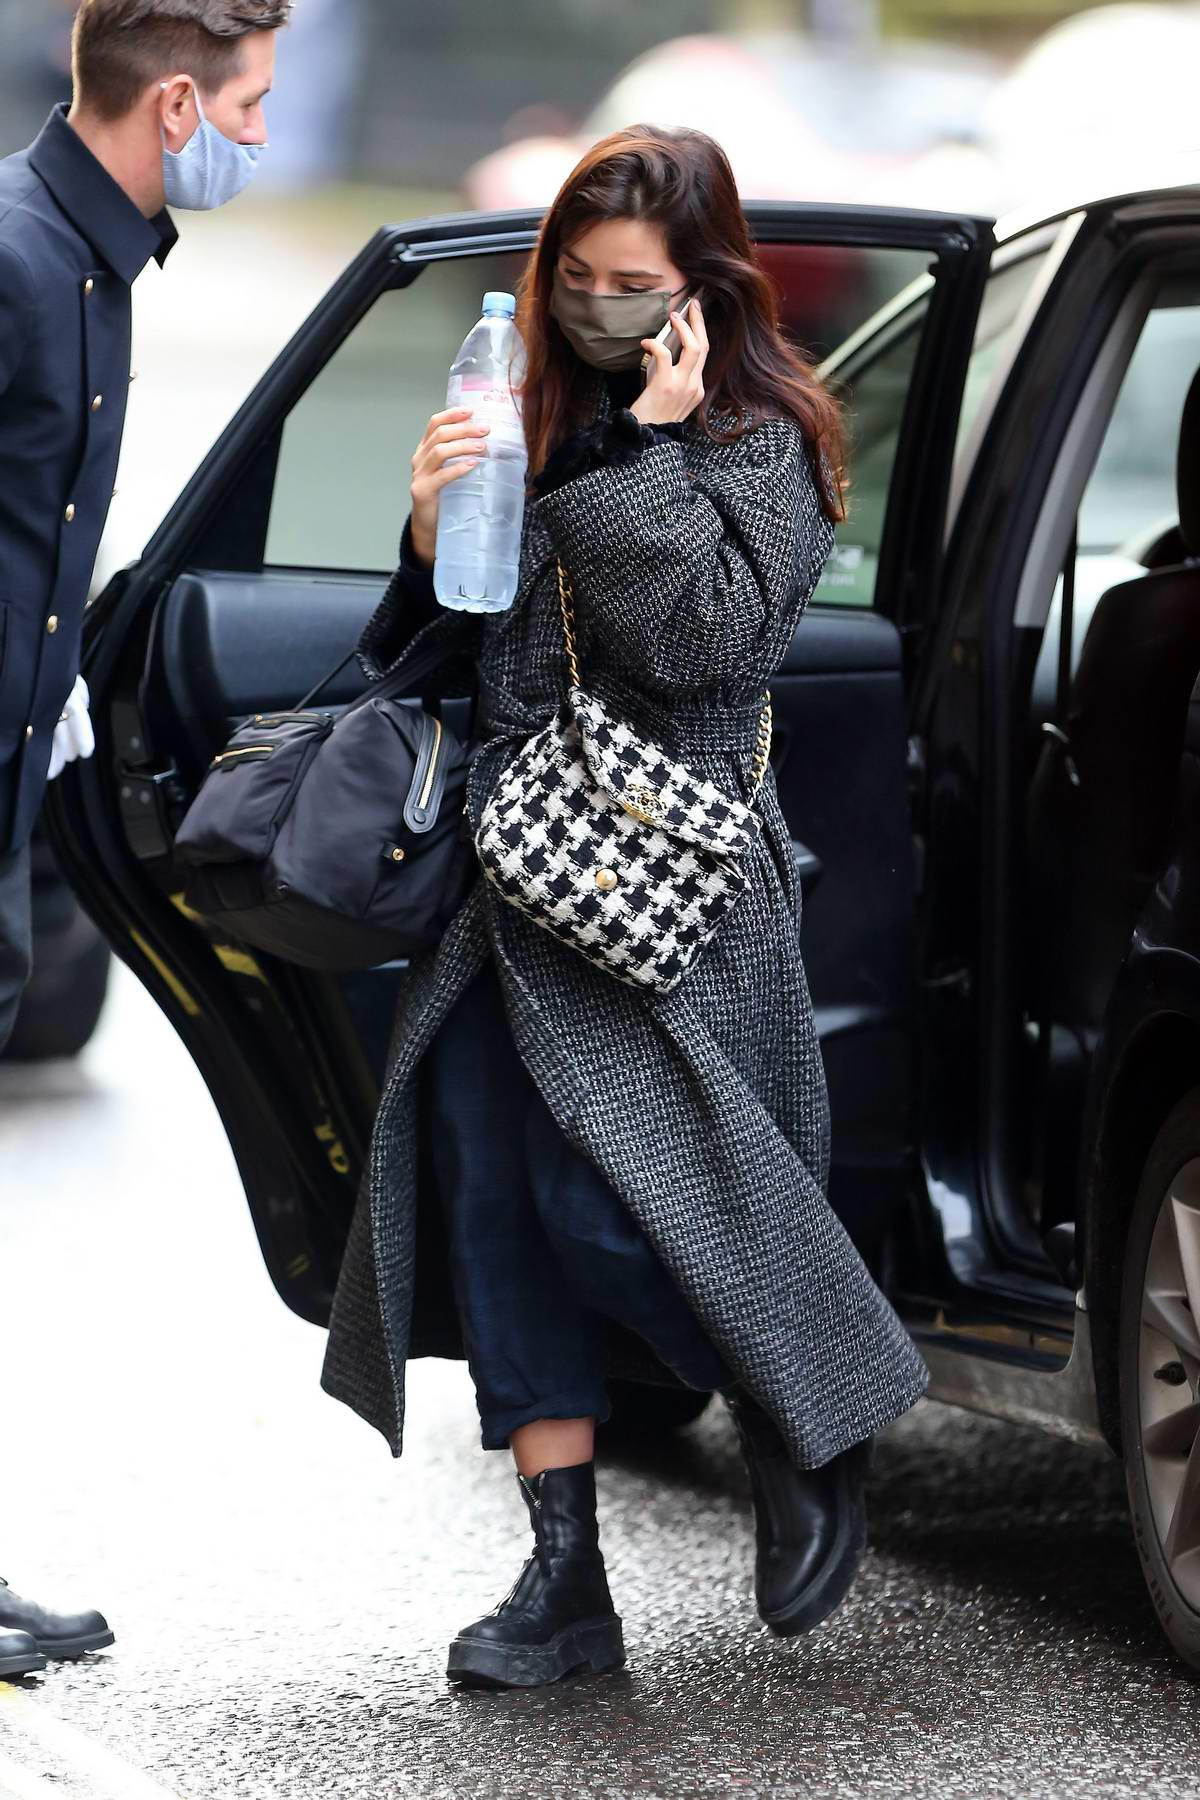 Jenna Coleman got her hands full as she steps out wearing a tweed coat in London, UK